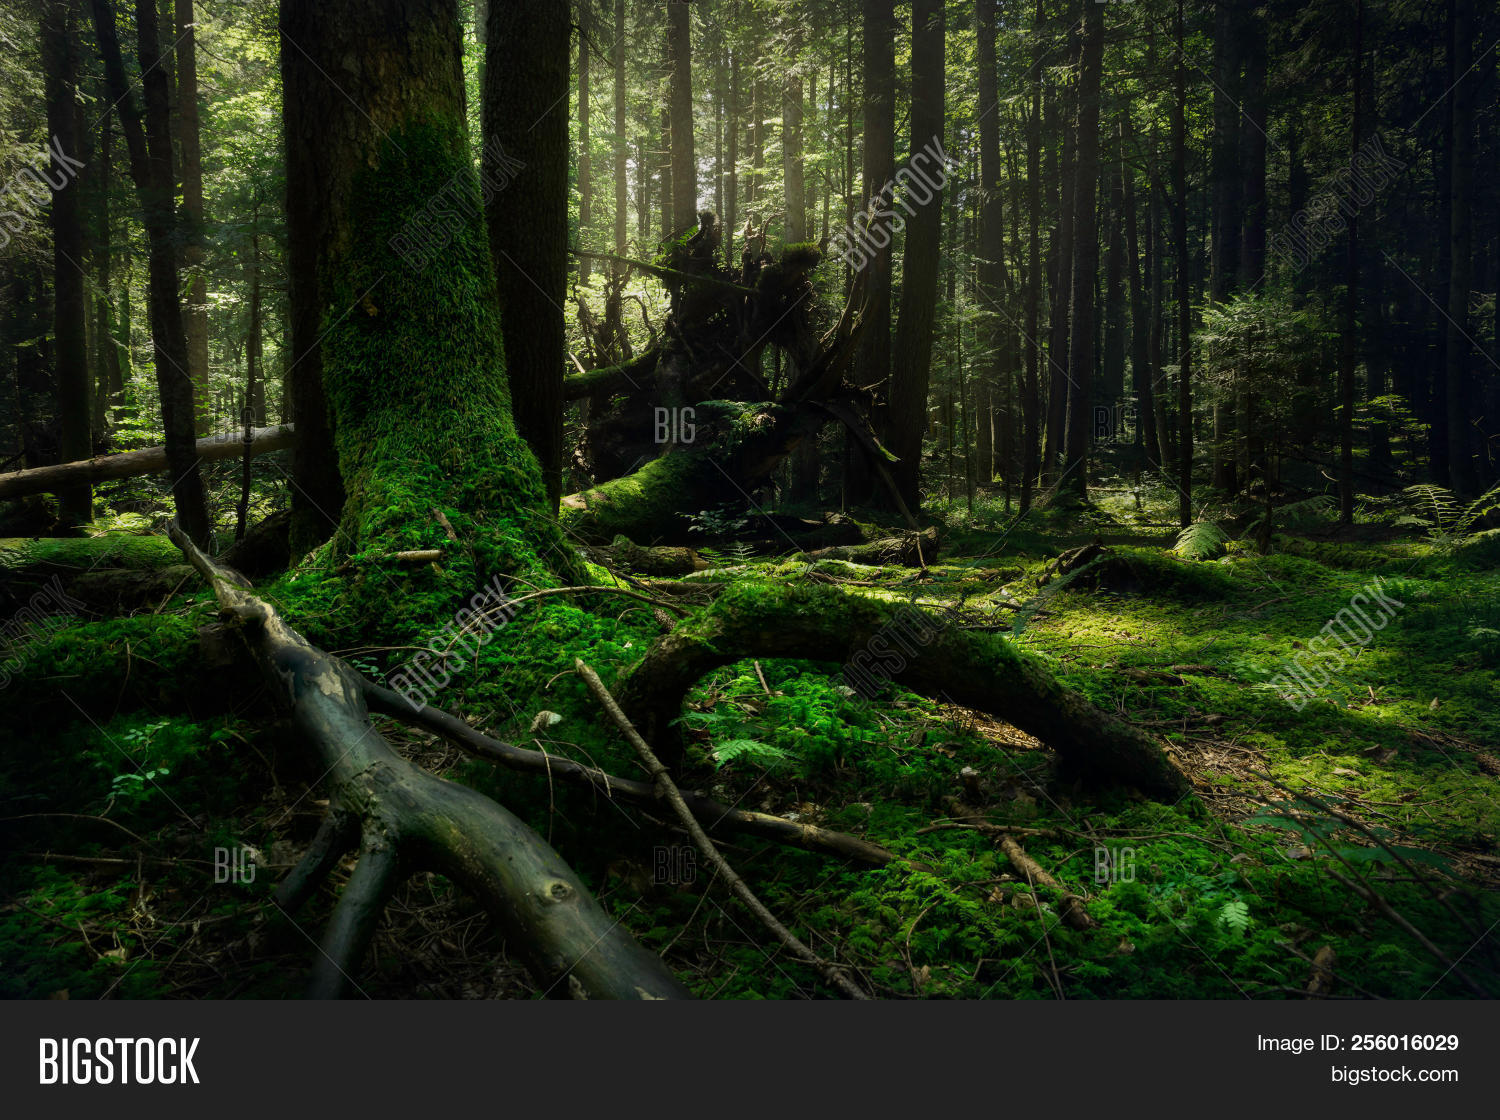 Dark Forest Forest Image Photo Free Trial Bigstock Free for commercial use no attribution required high quality images. dark forest forest image photo free